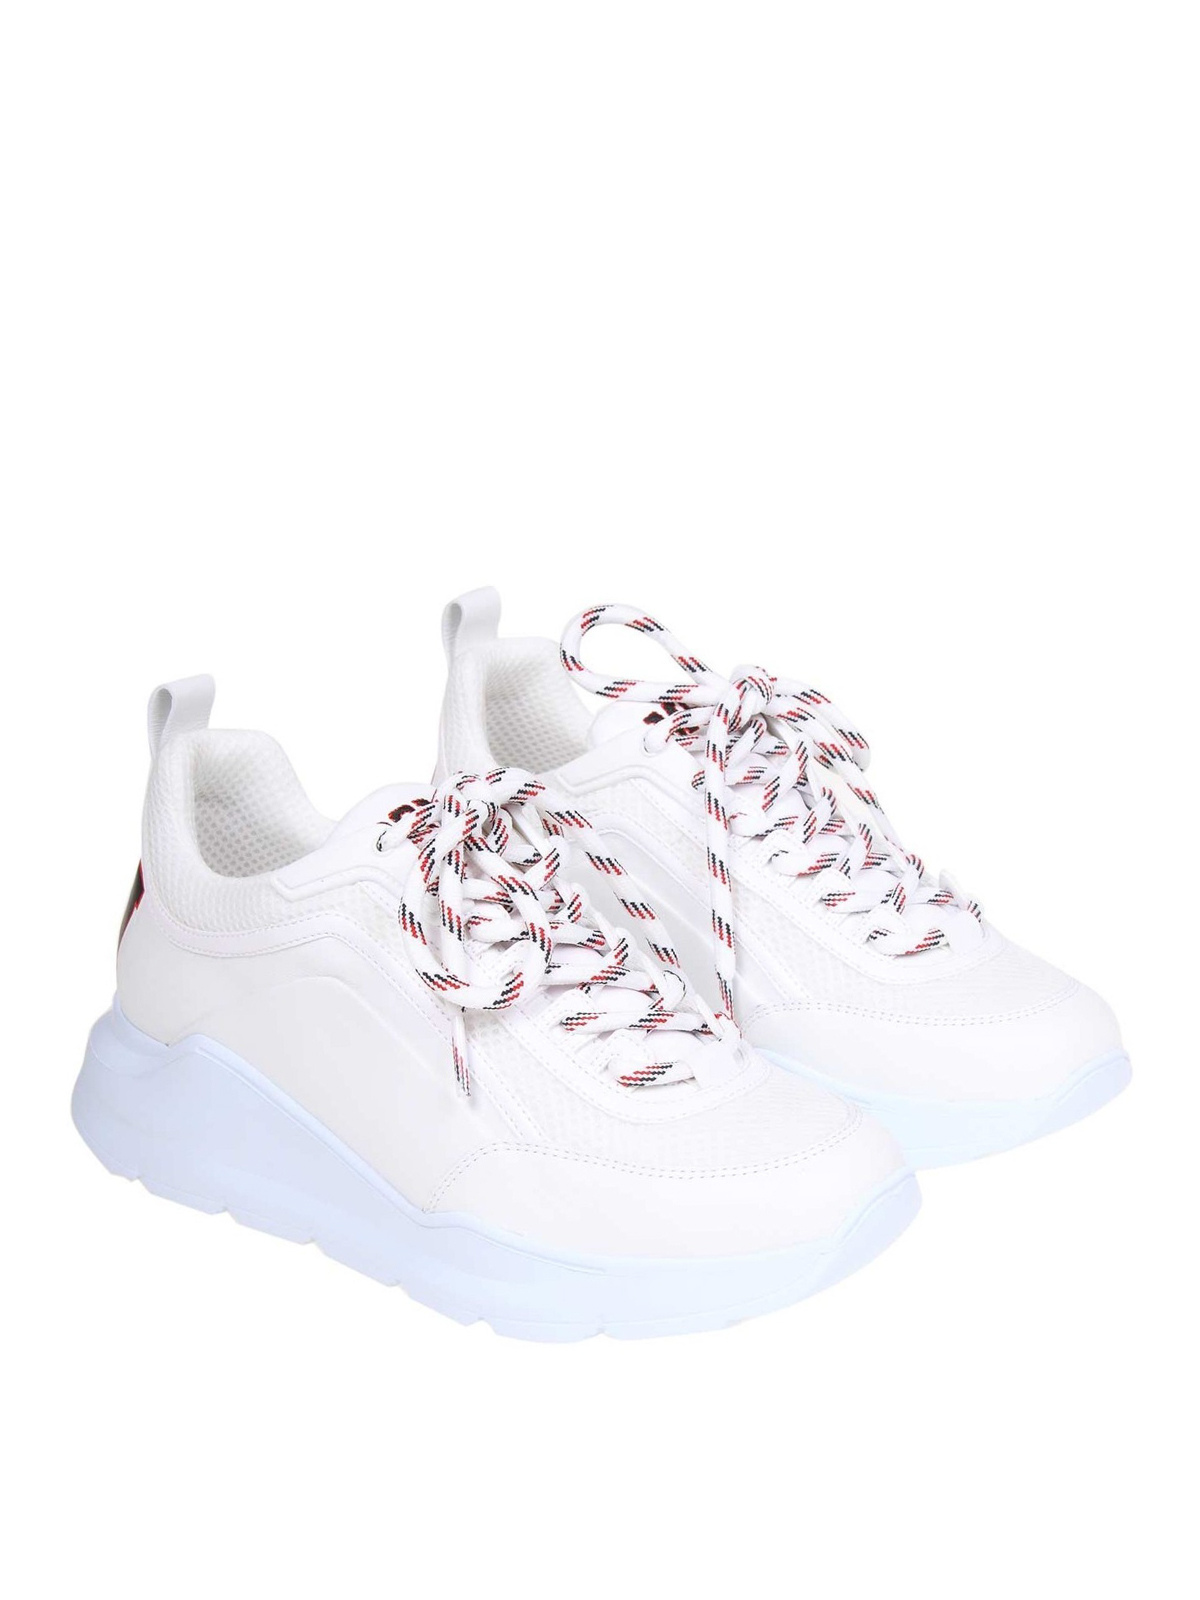 M.S.G.M. Sneaker Z Running bianche sneakers